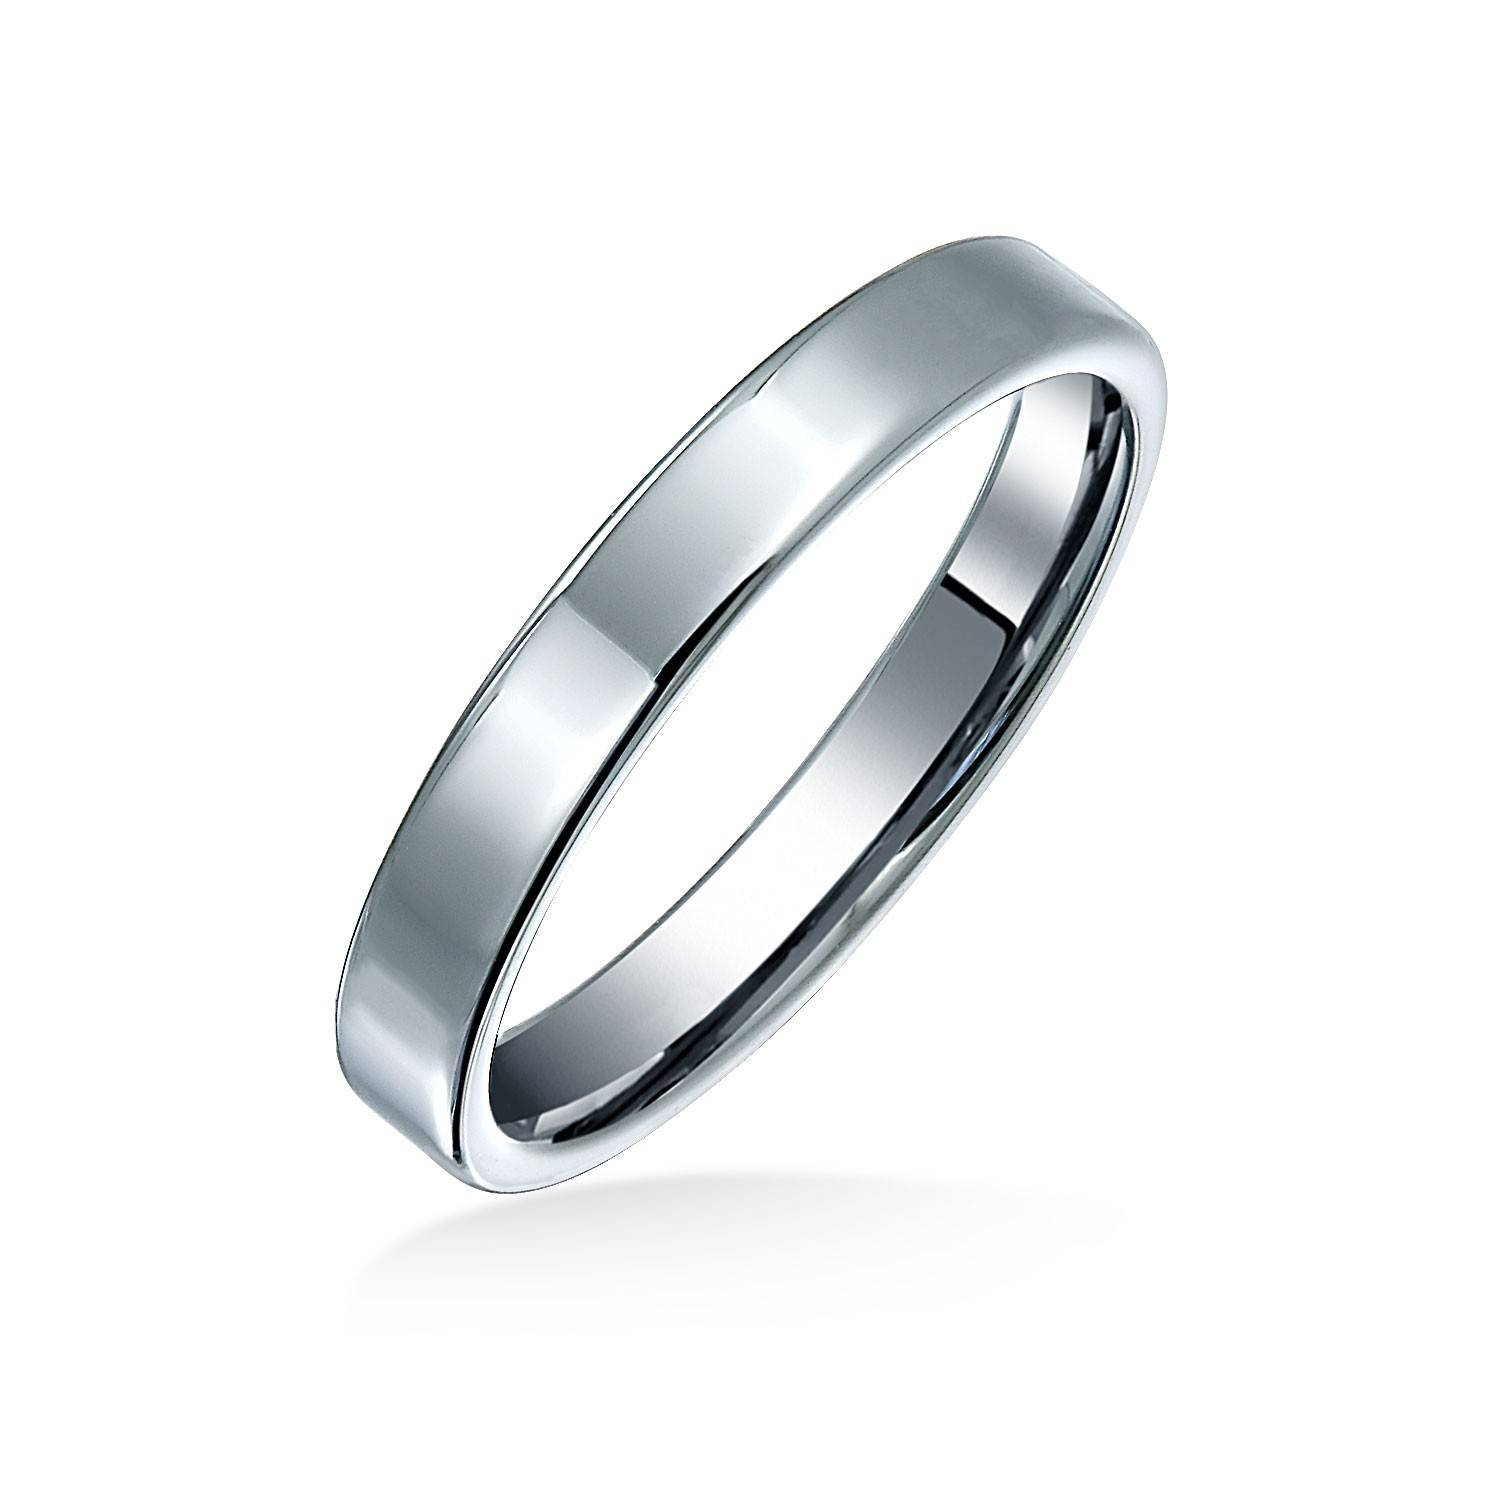 Unisex Polished Tungsten Flat Wedding Band Ring 3mm Pertaining To 2017 Mens Flat Wedding Bands (View 2 of 15)